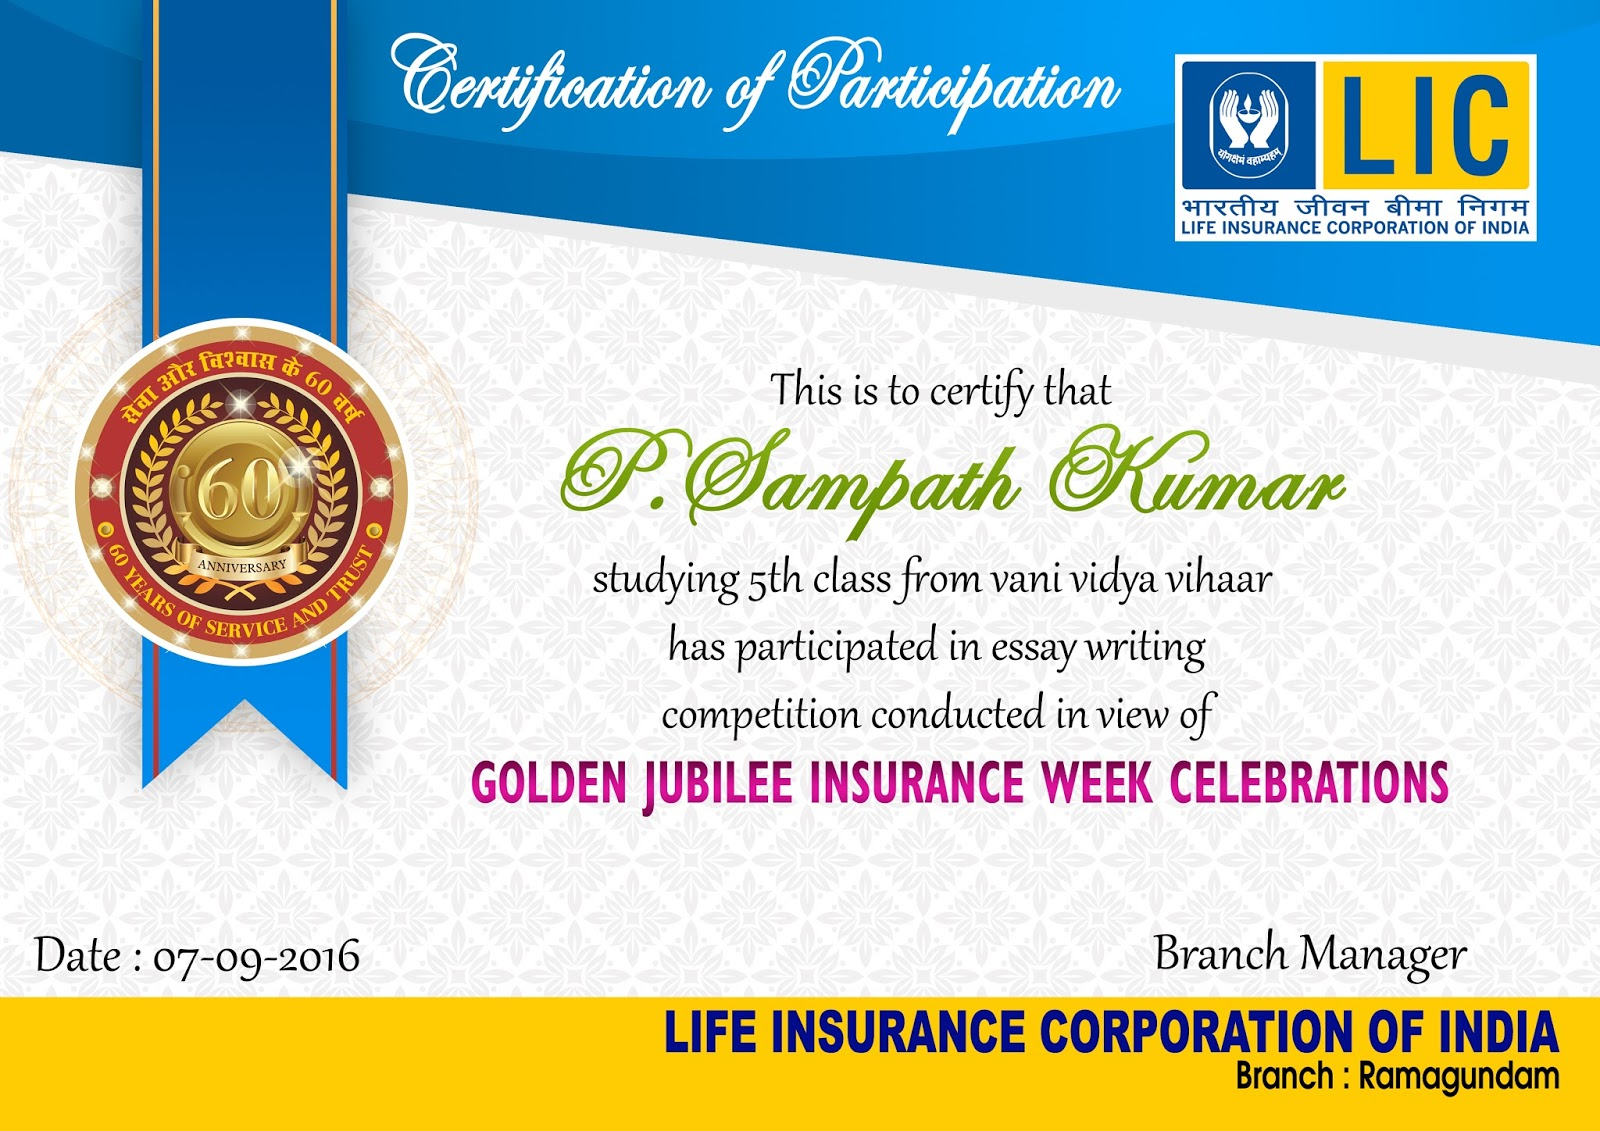 lic appreciation certificate design psd template for free download link